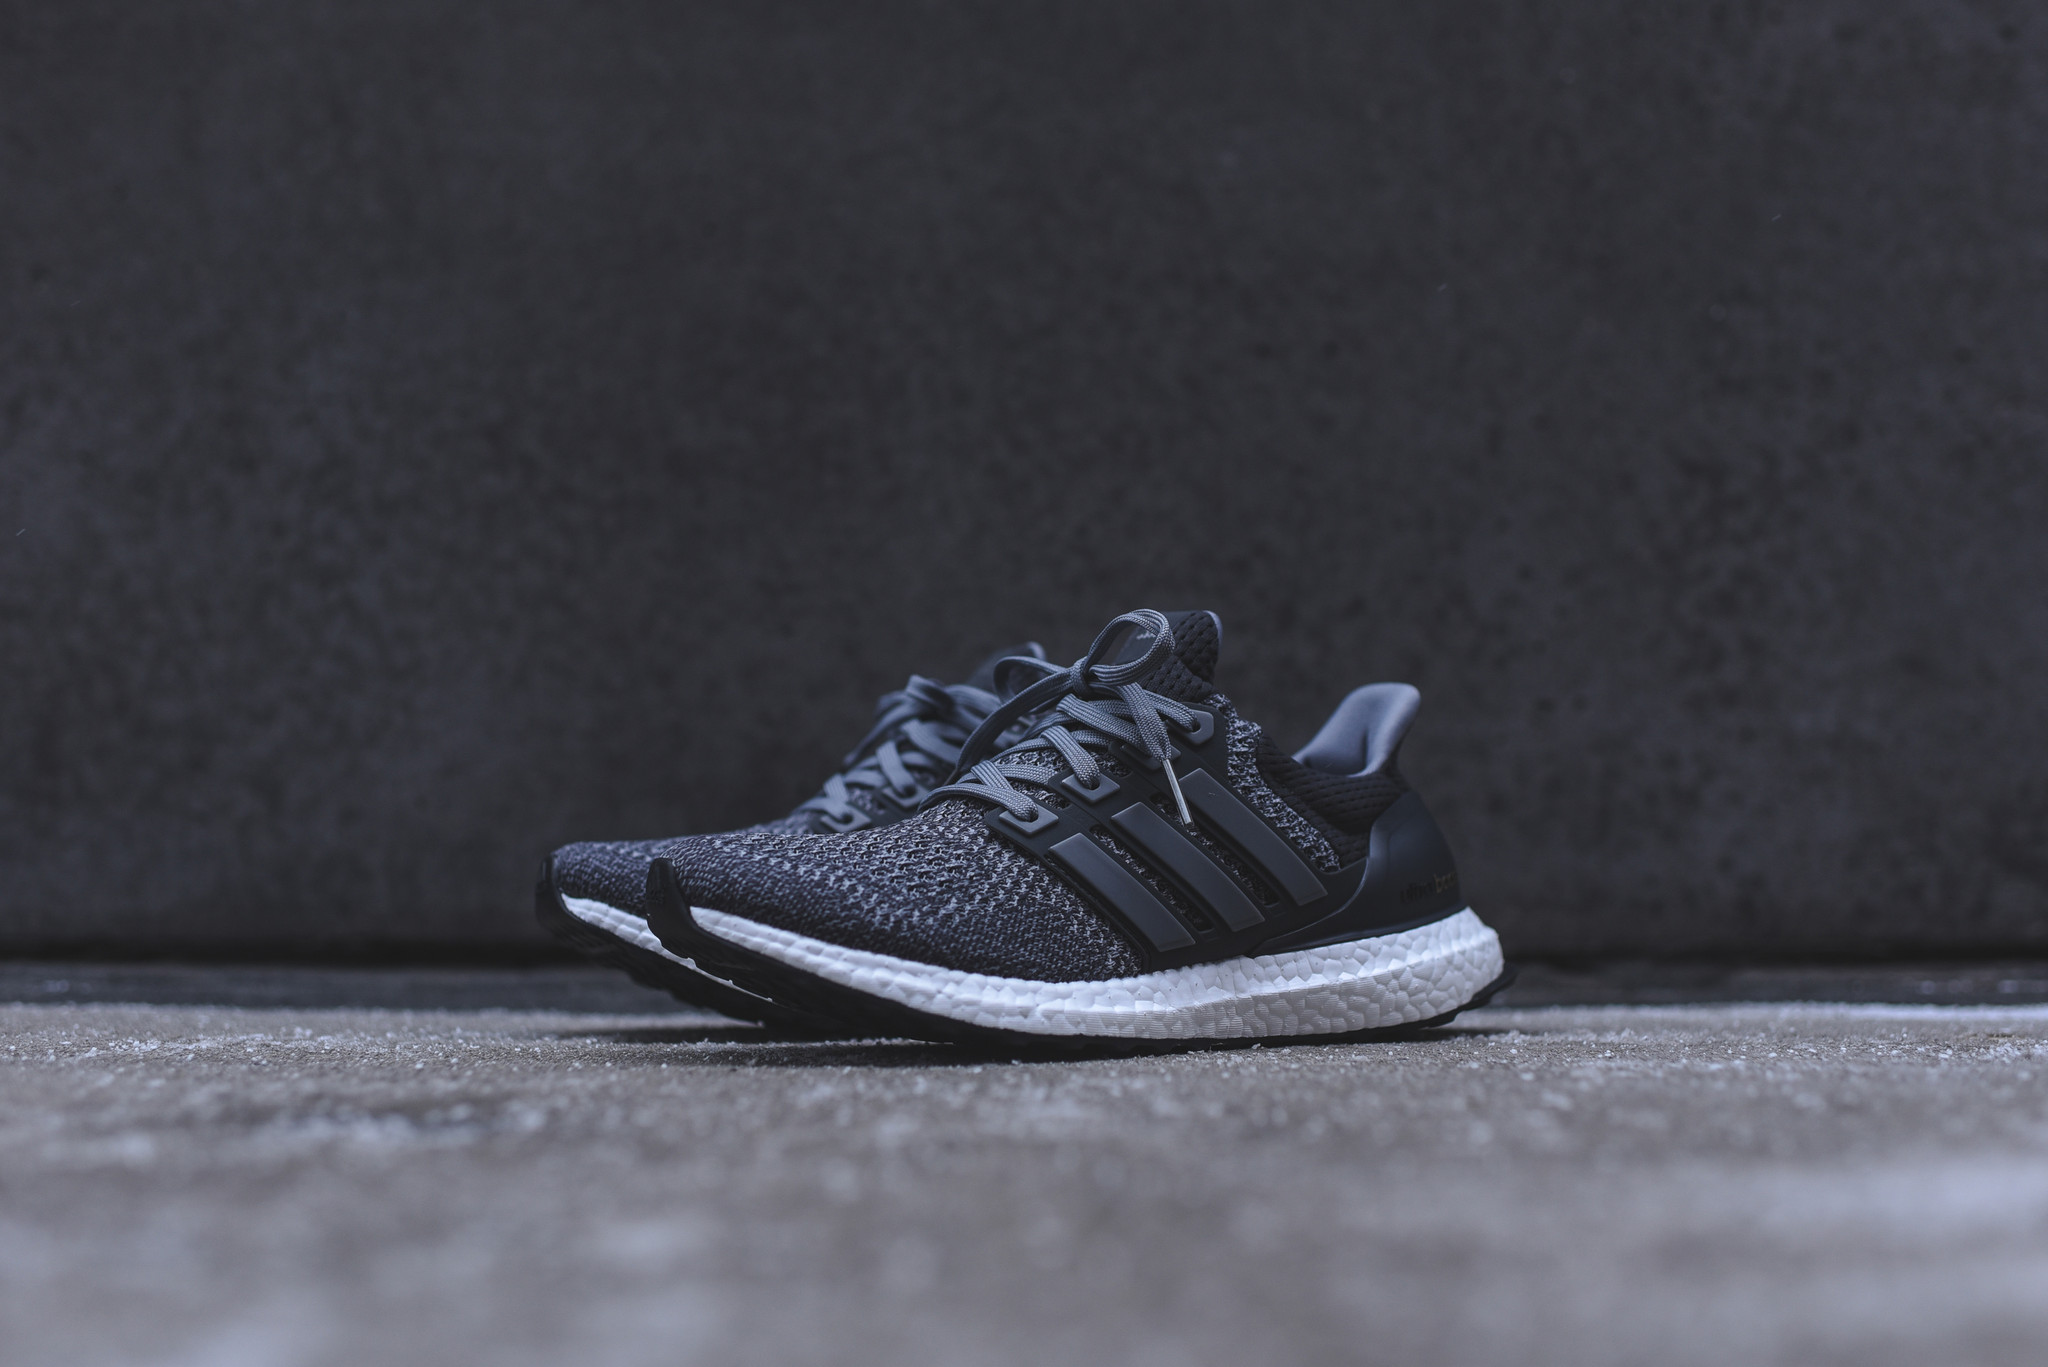 17893c8b031a0 The adidas Ultra Boost 3.0 in Black is Available Now - WearTesters